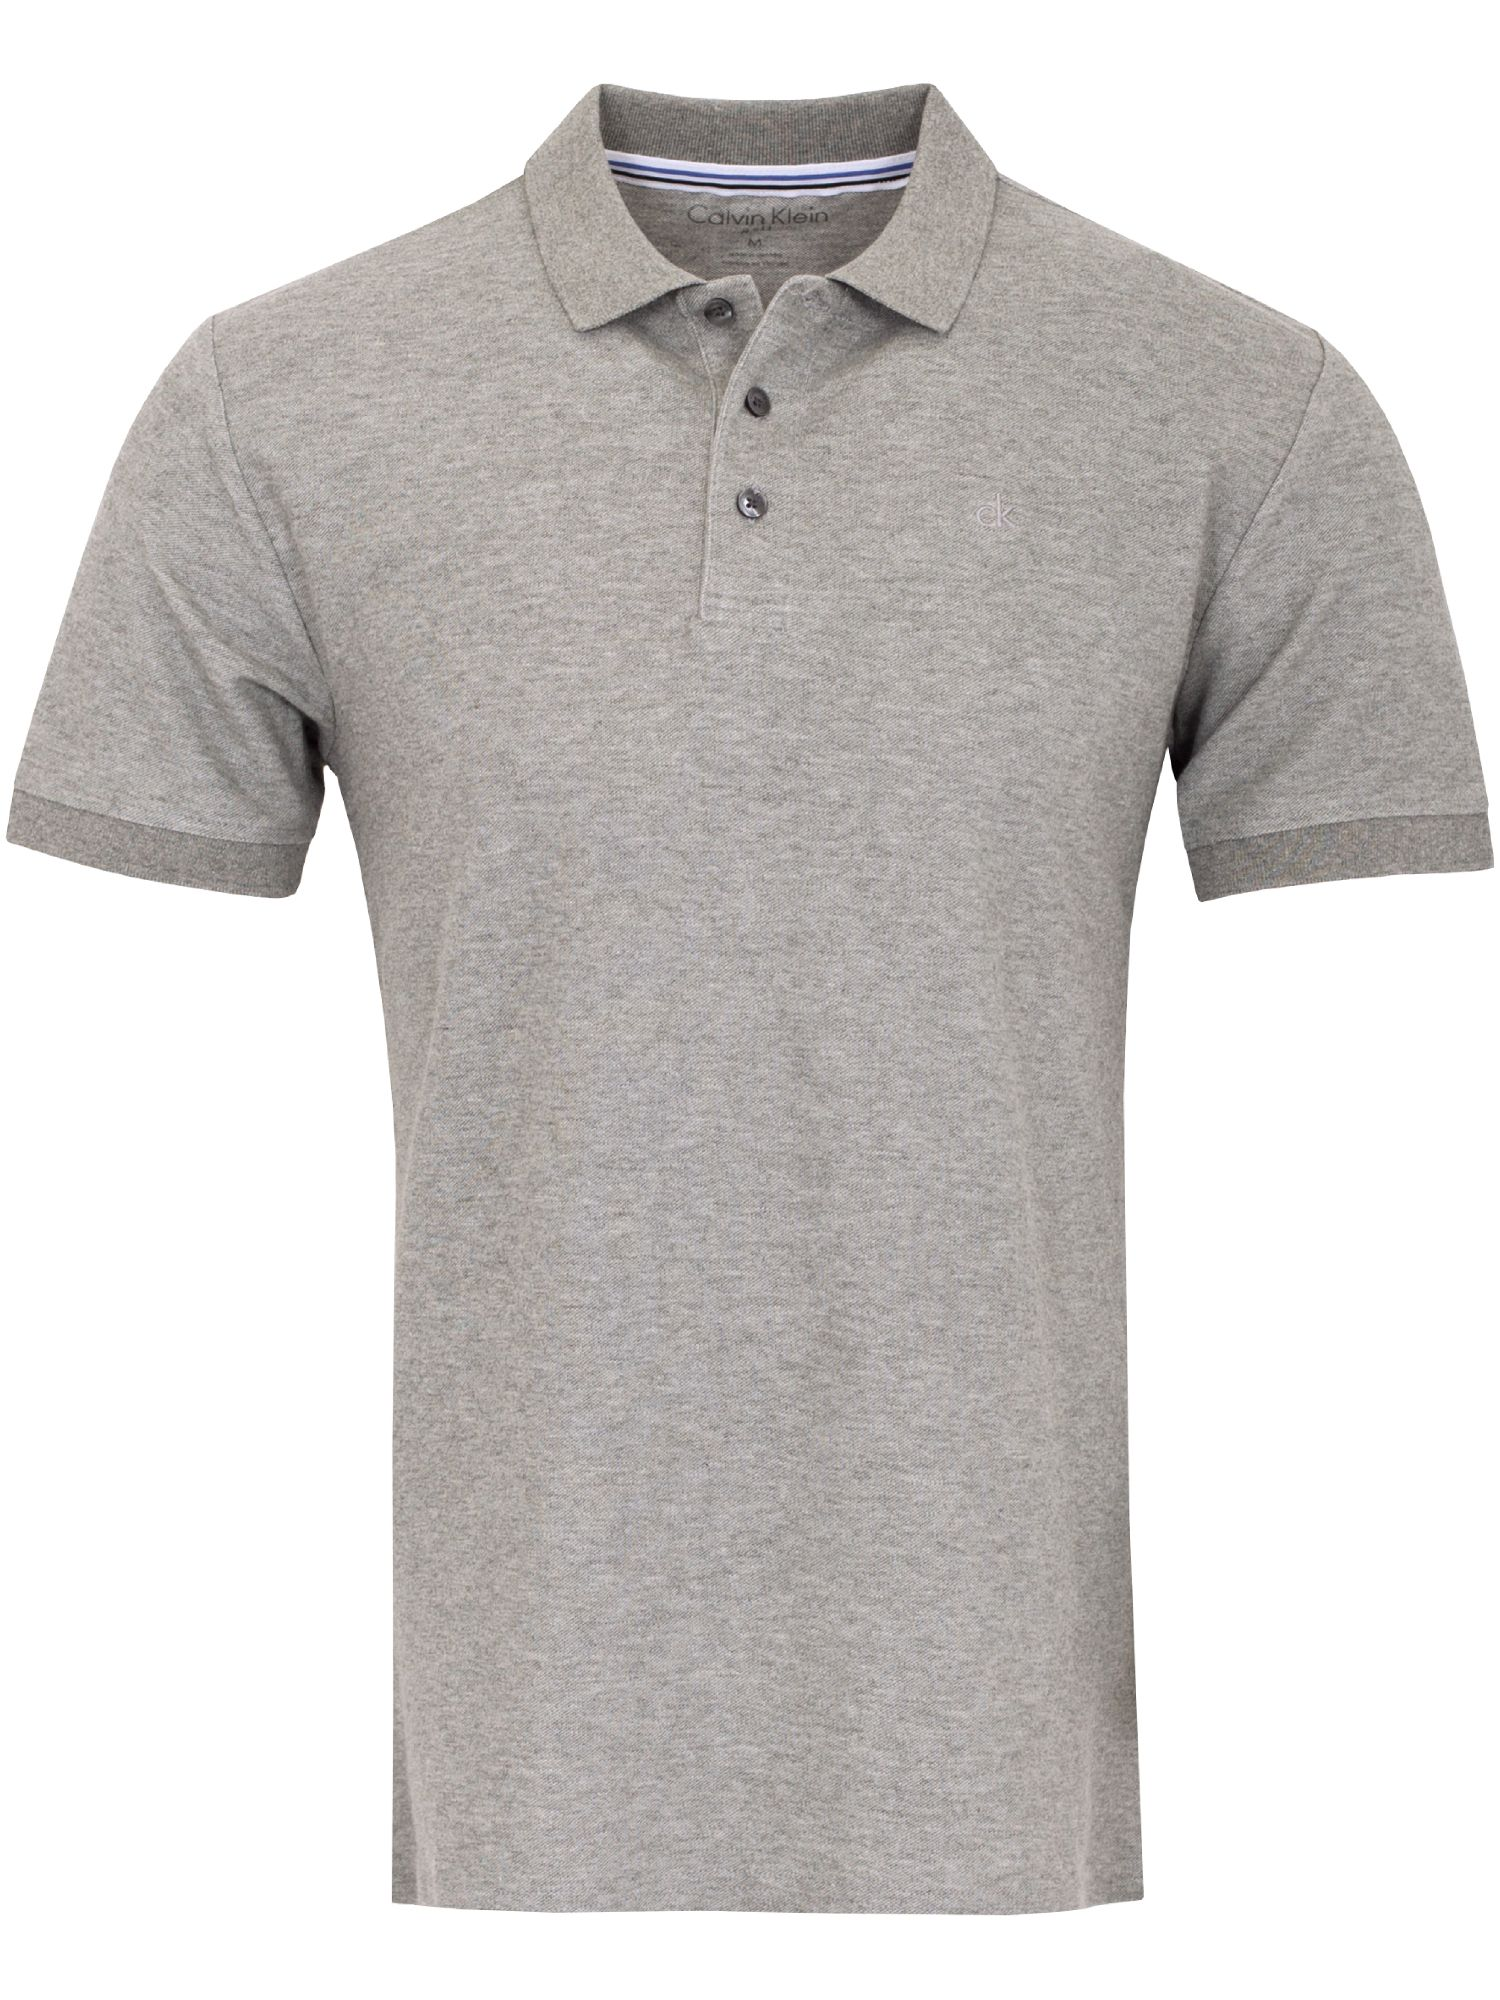 Men's Calvin Klein Golf Midtown Radical Cotton Polo, Grey